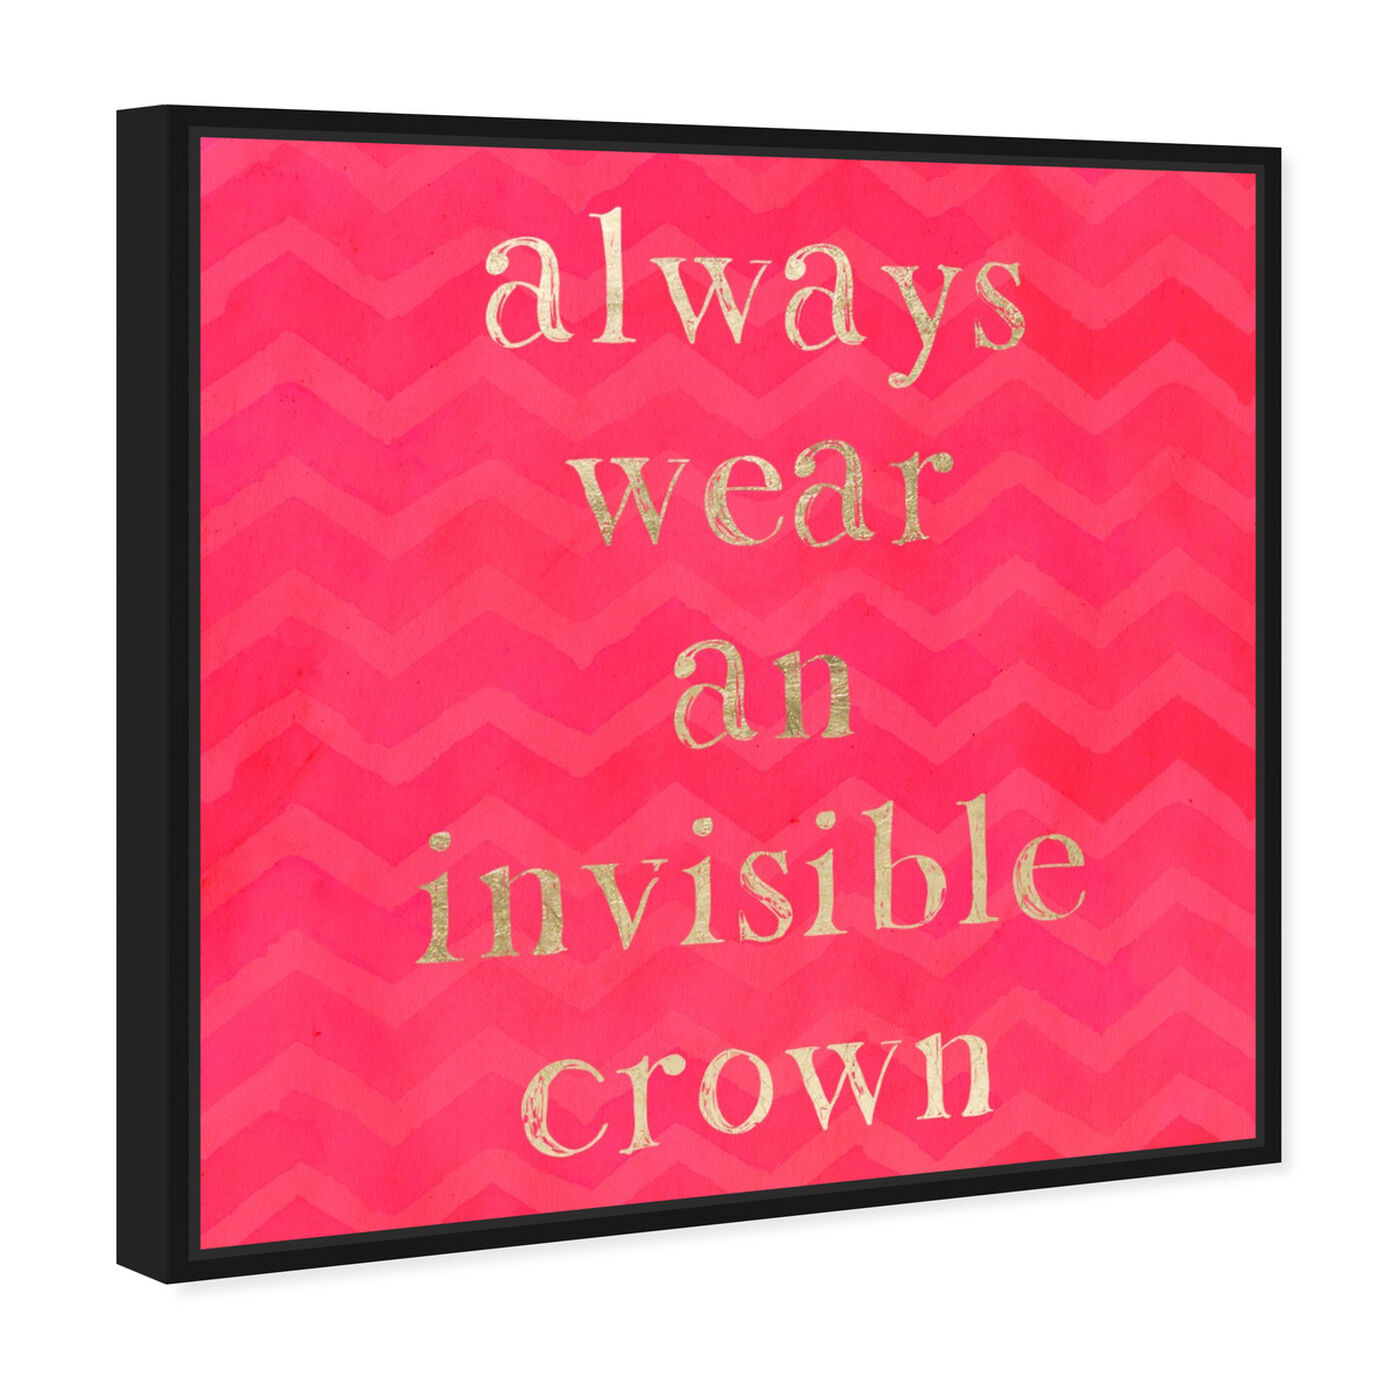 Angled view of Invisible Crown featuring typography and quotes and fashion quotes and sayings art.